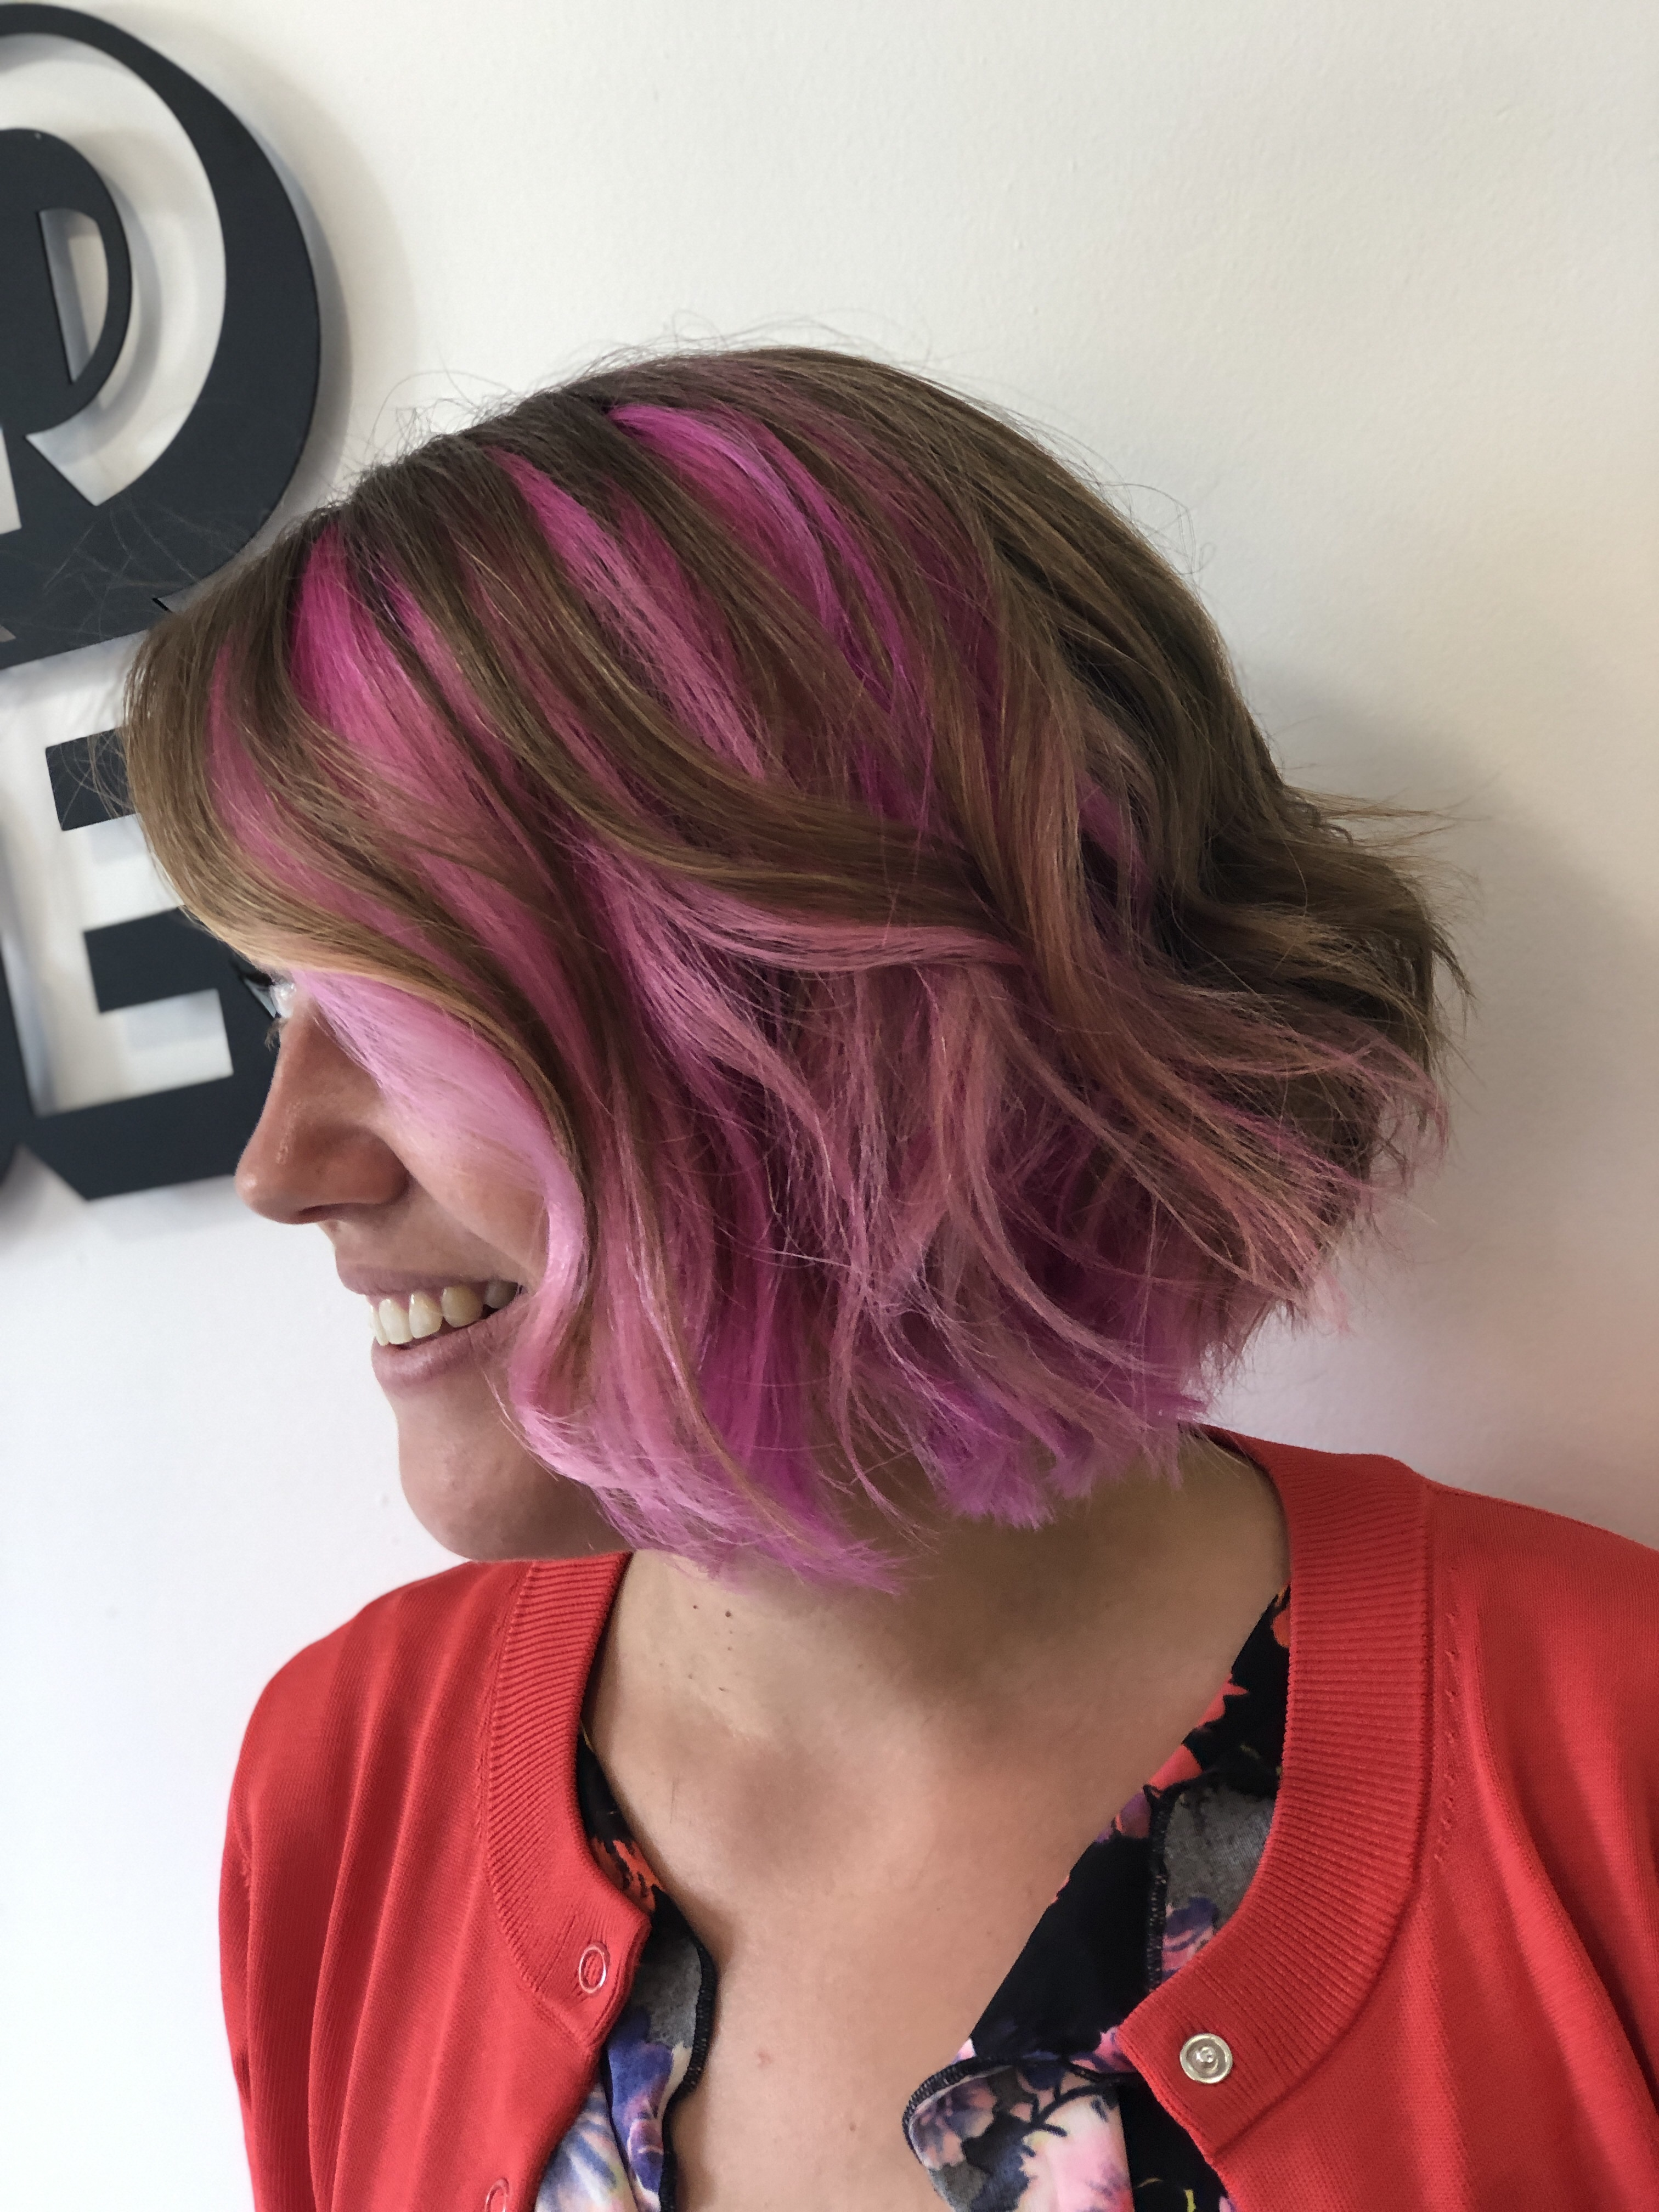 An after photo of my lovely hair do with the pink showing through the layers thanks to Hiley Hair Club in Cheltenham.